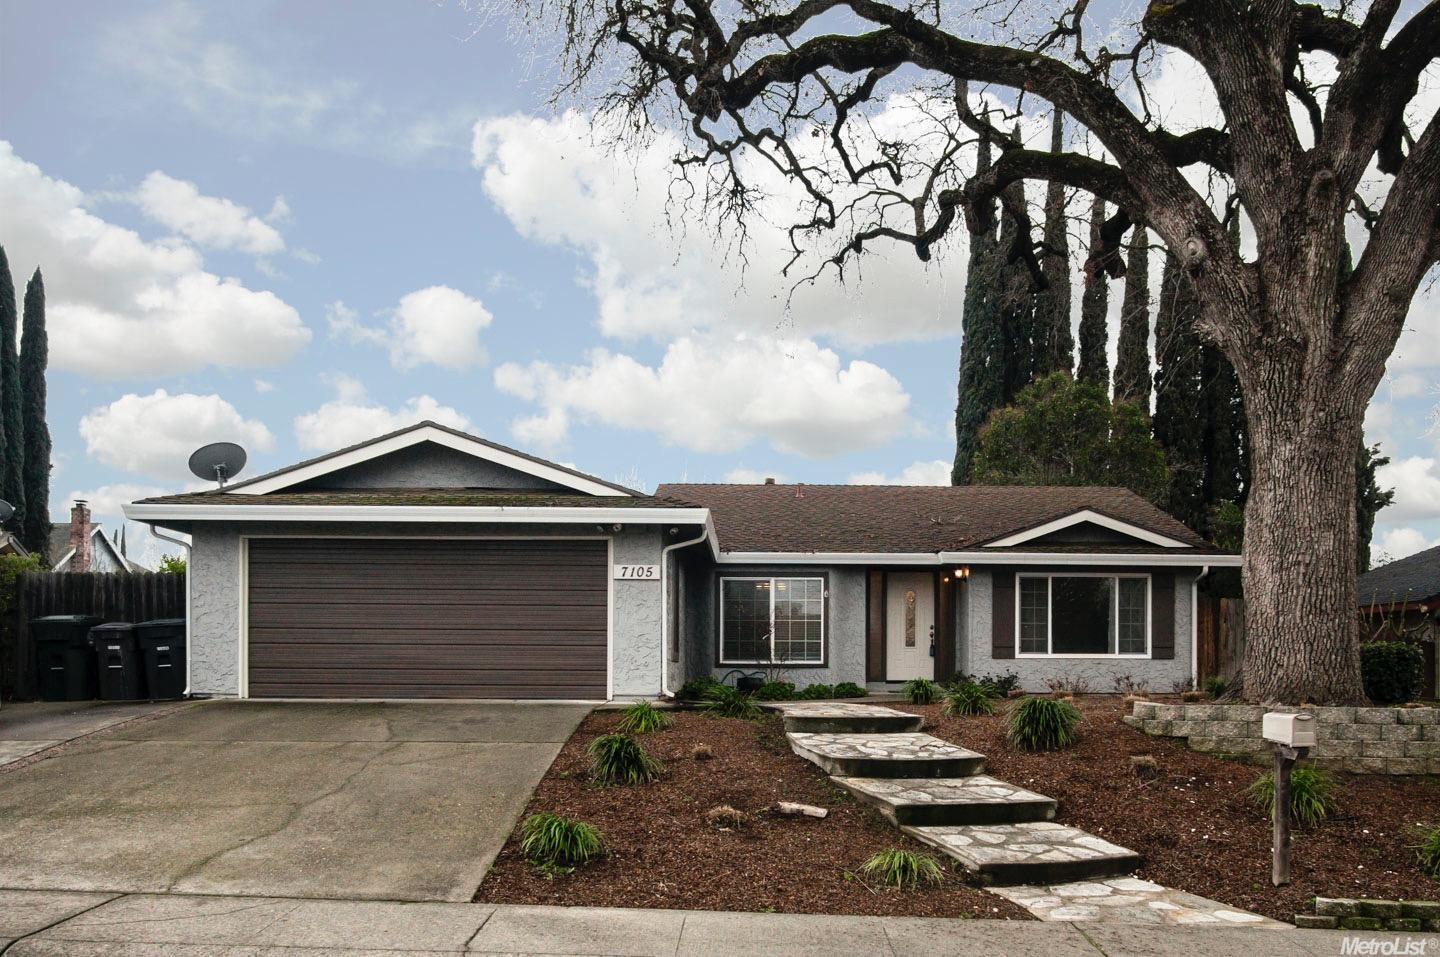 7105 Canelo Hills Dr, Citrus Heights, CA 95610